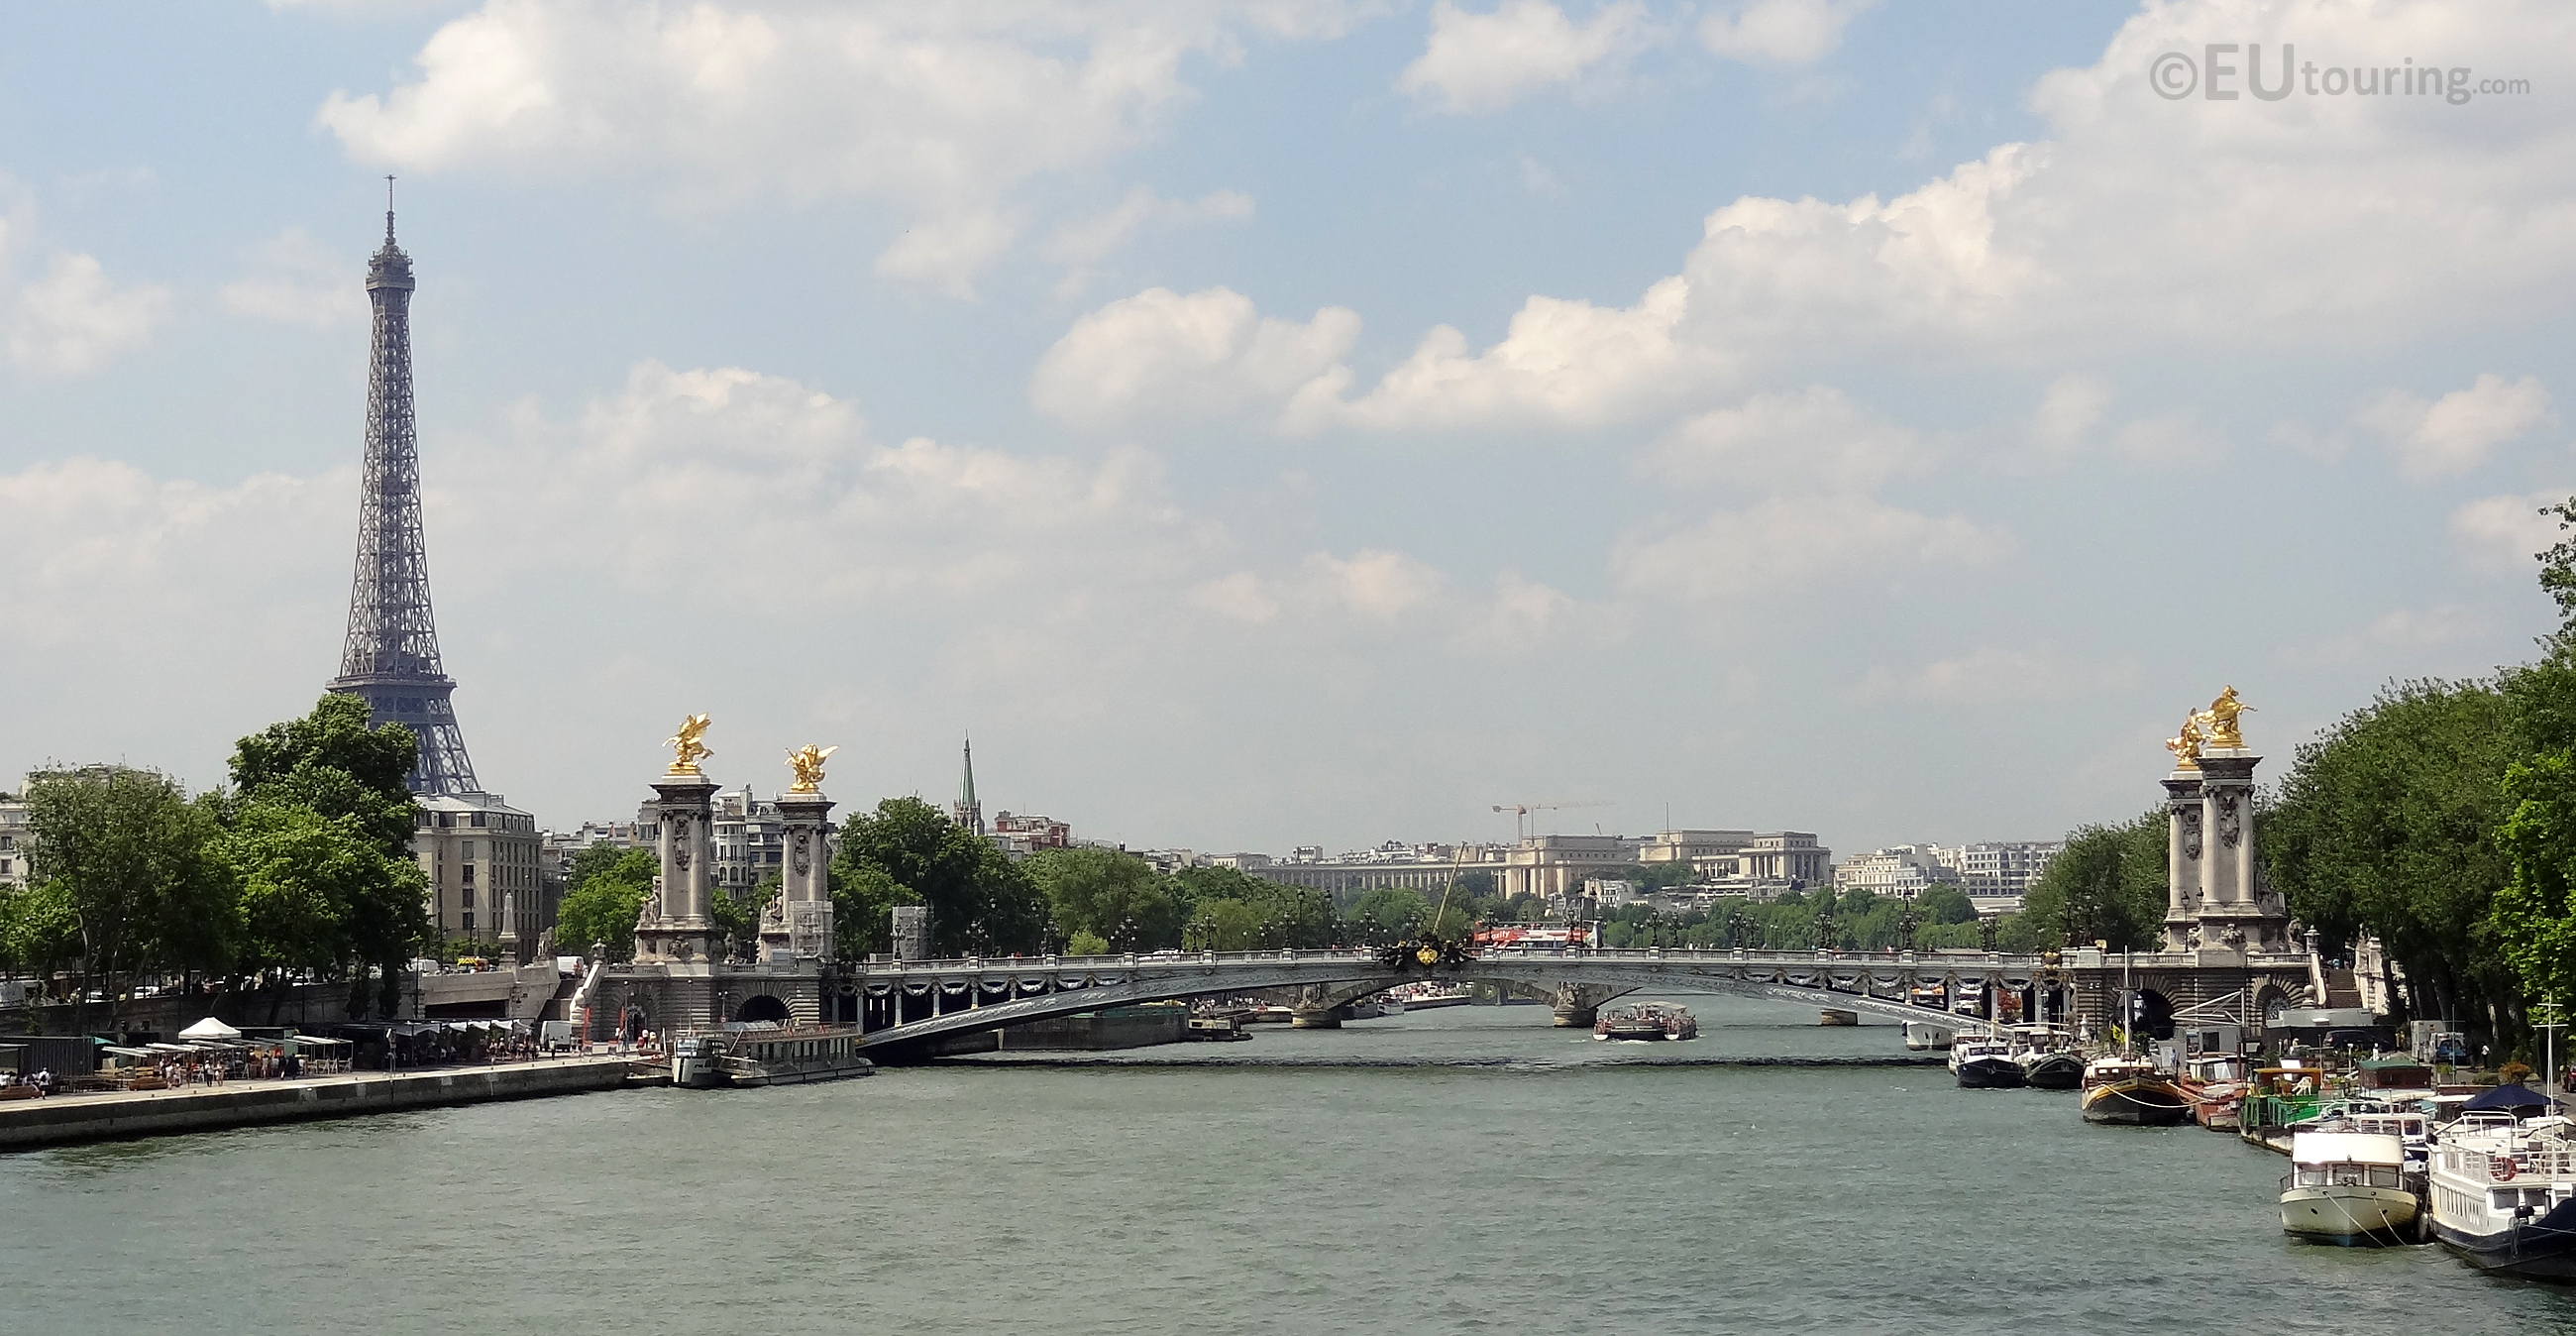 View over the River and city